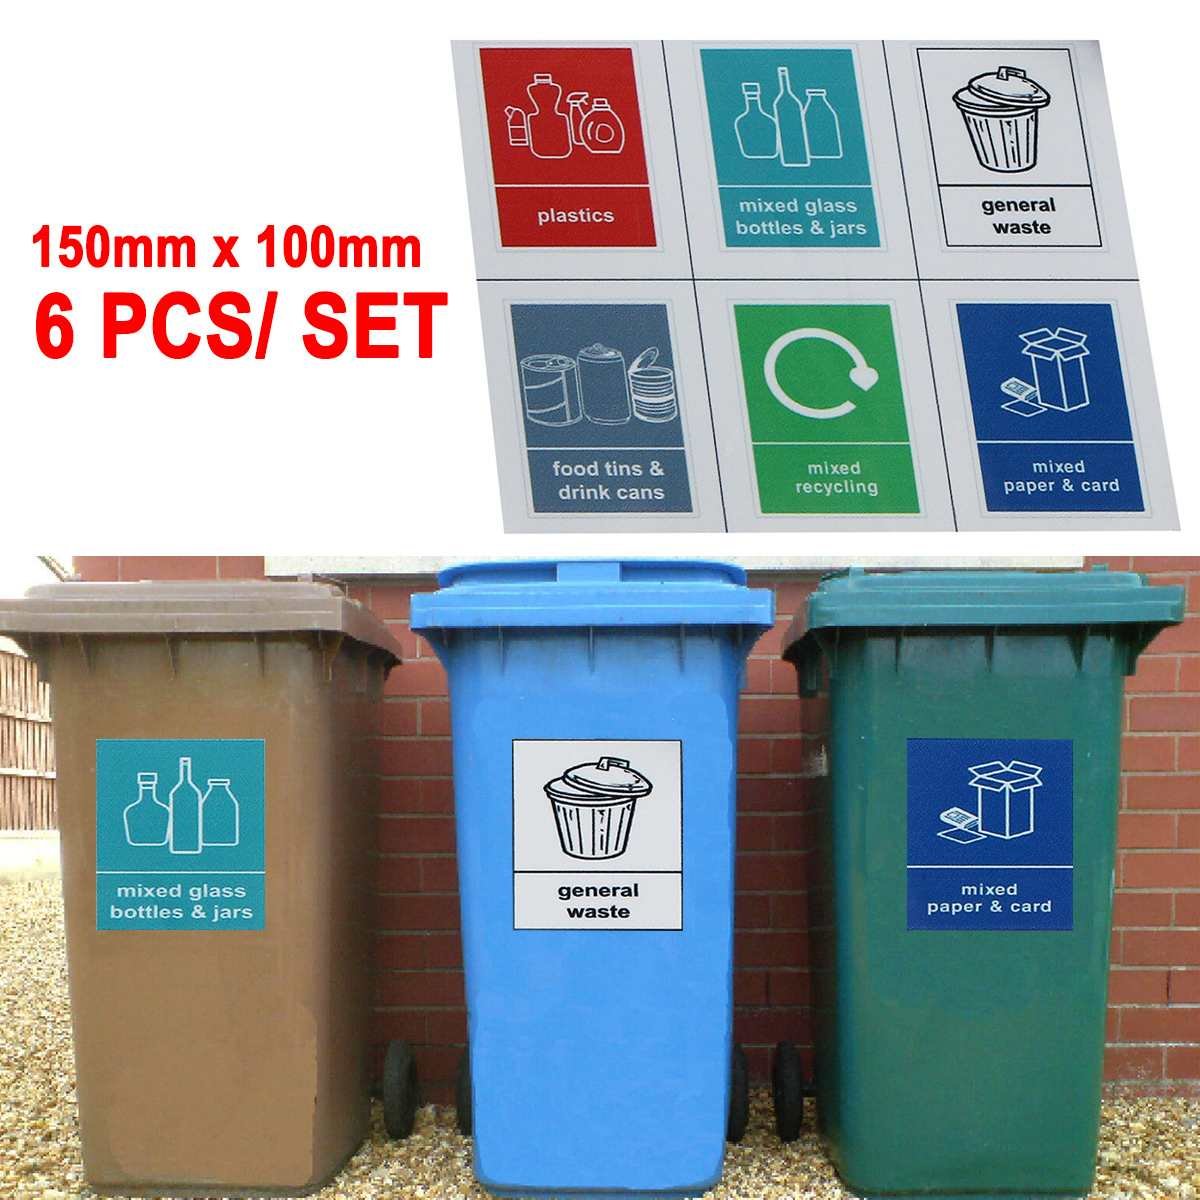 Trash Bin Stickers Recycling Bin Sticker Classification Sign Recycle Bin Mixed Pack Self-adhesive 6 Stickers General Waste Logo